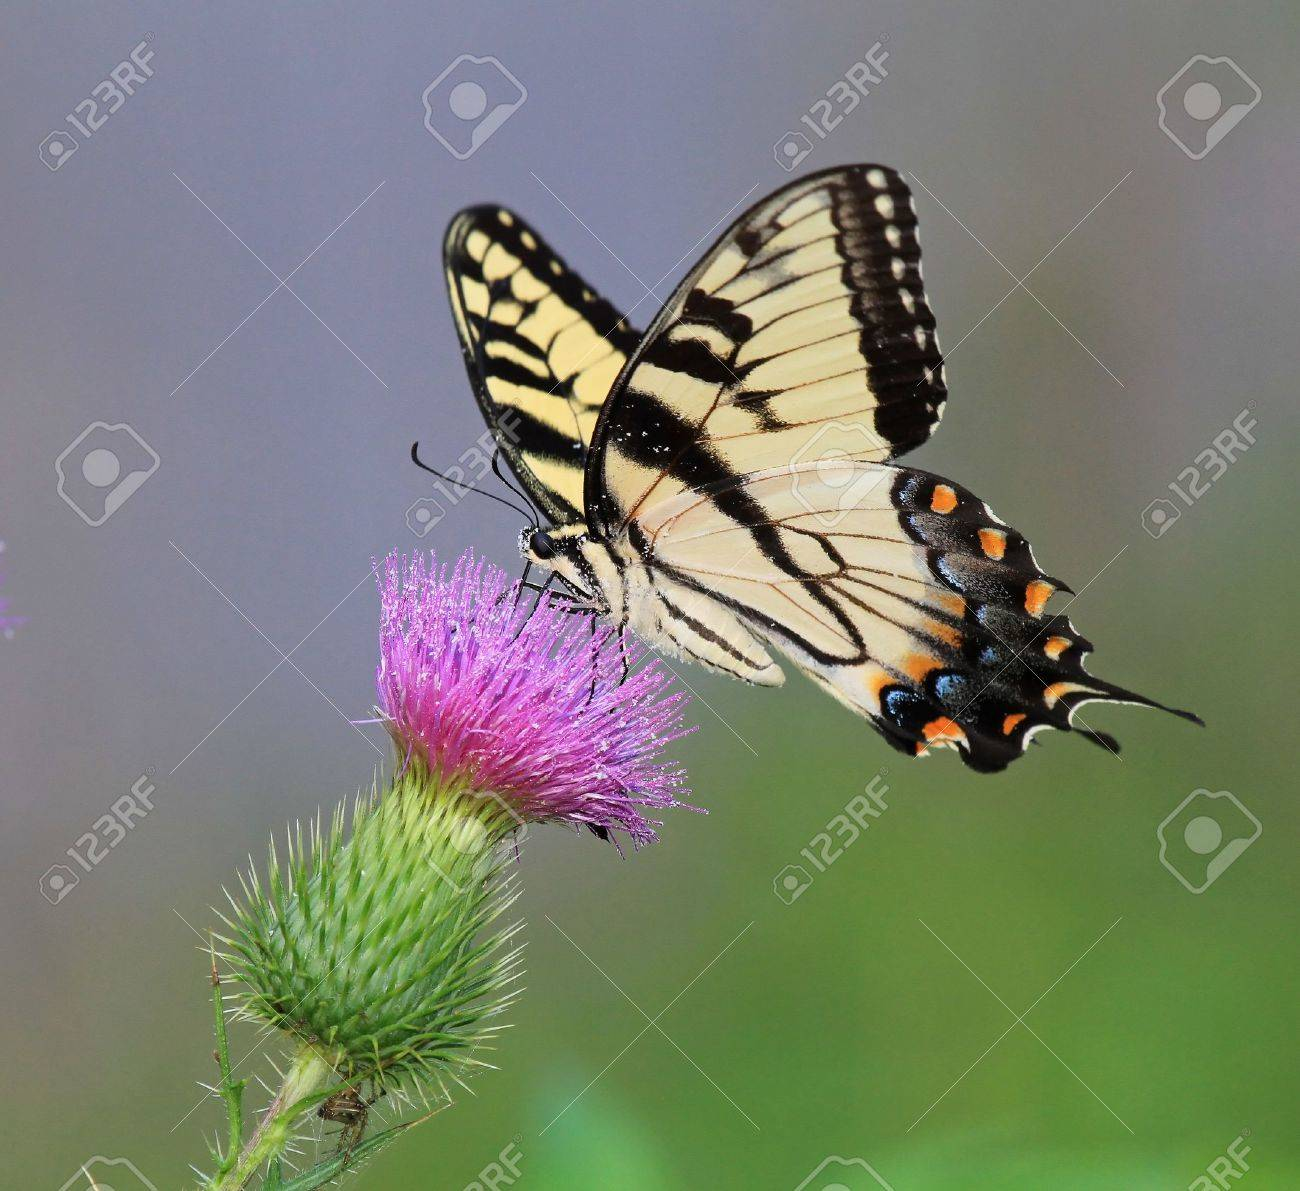 Eastern Tiger Swallowtail butterfly feeding on Spear Thistle wildflowers in Maryland during the summer Stock Photo - 14854682